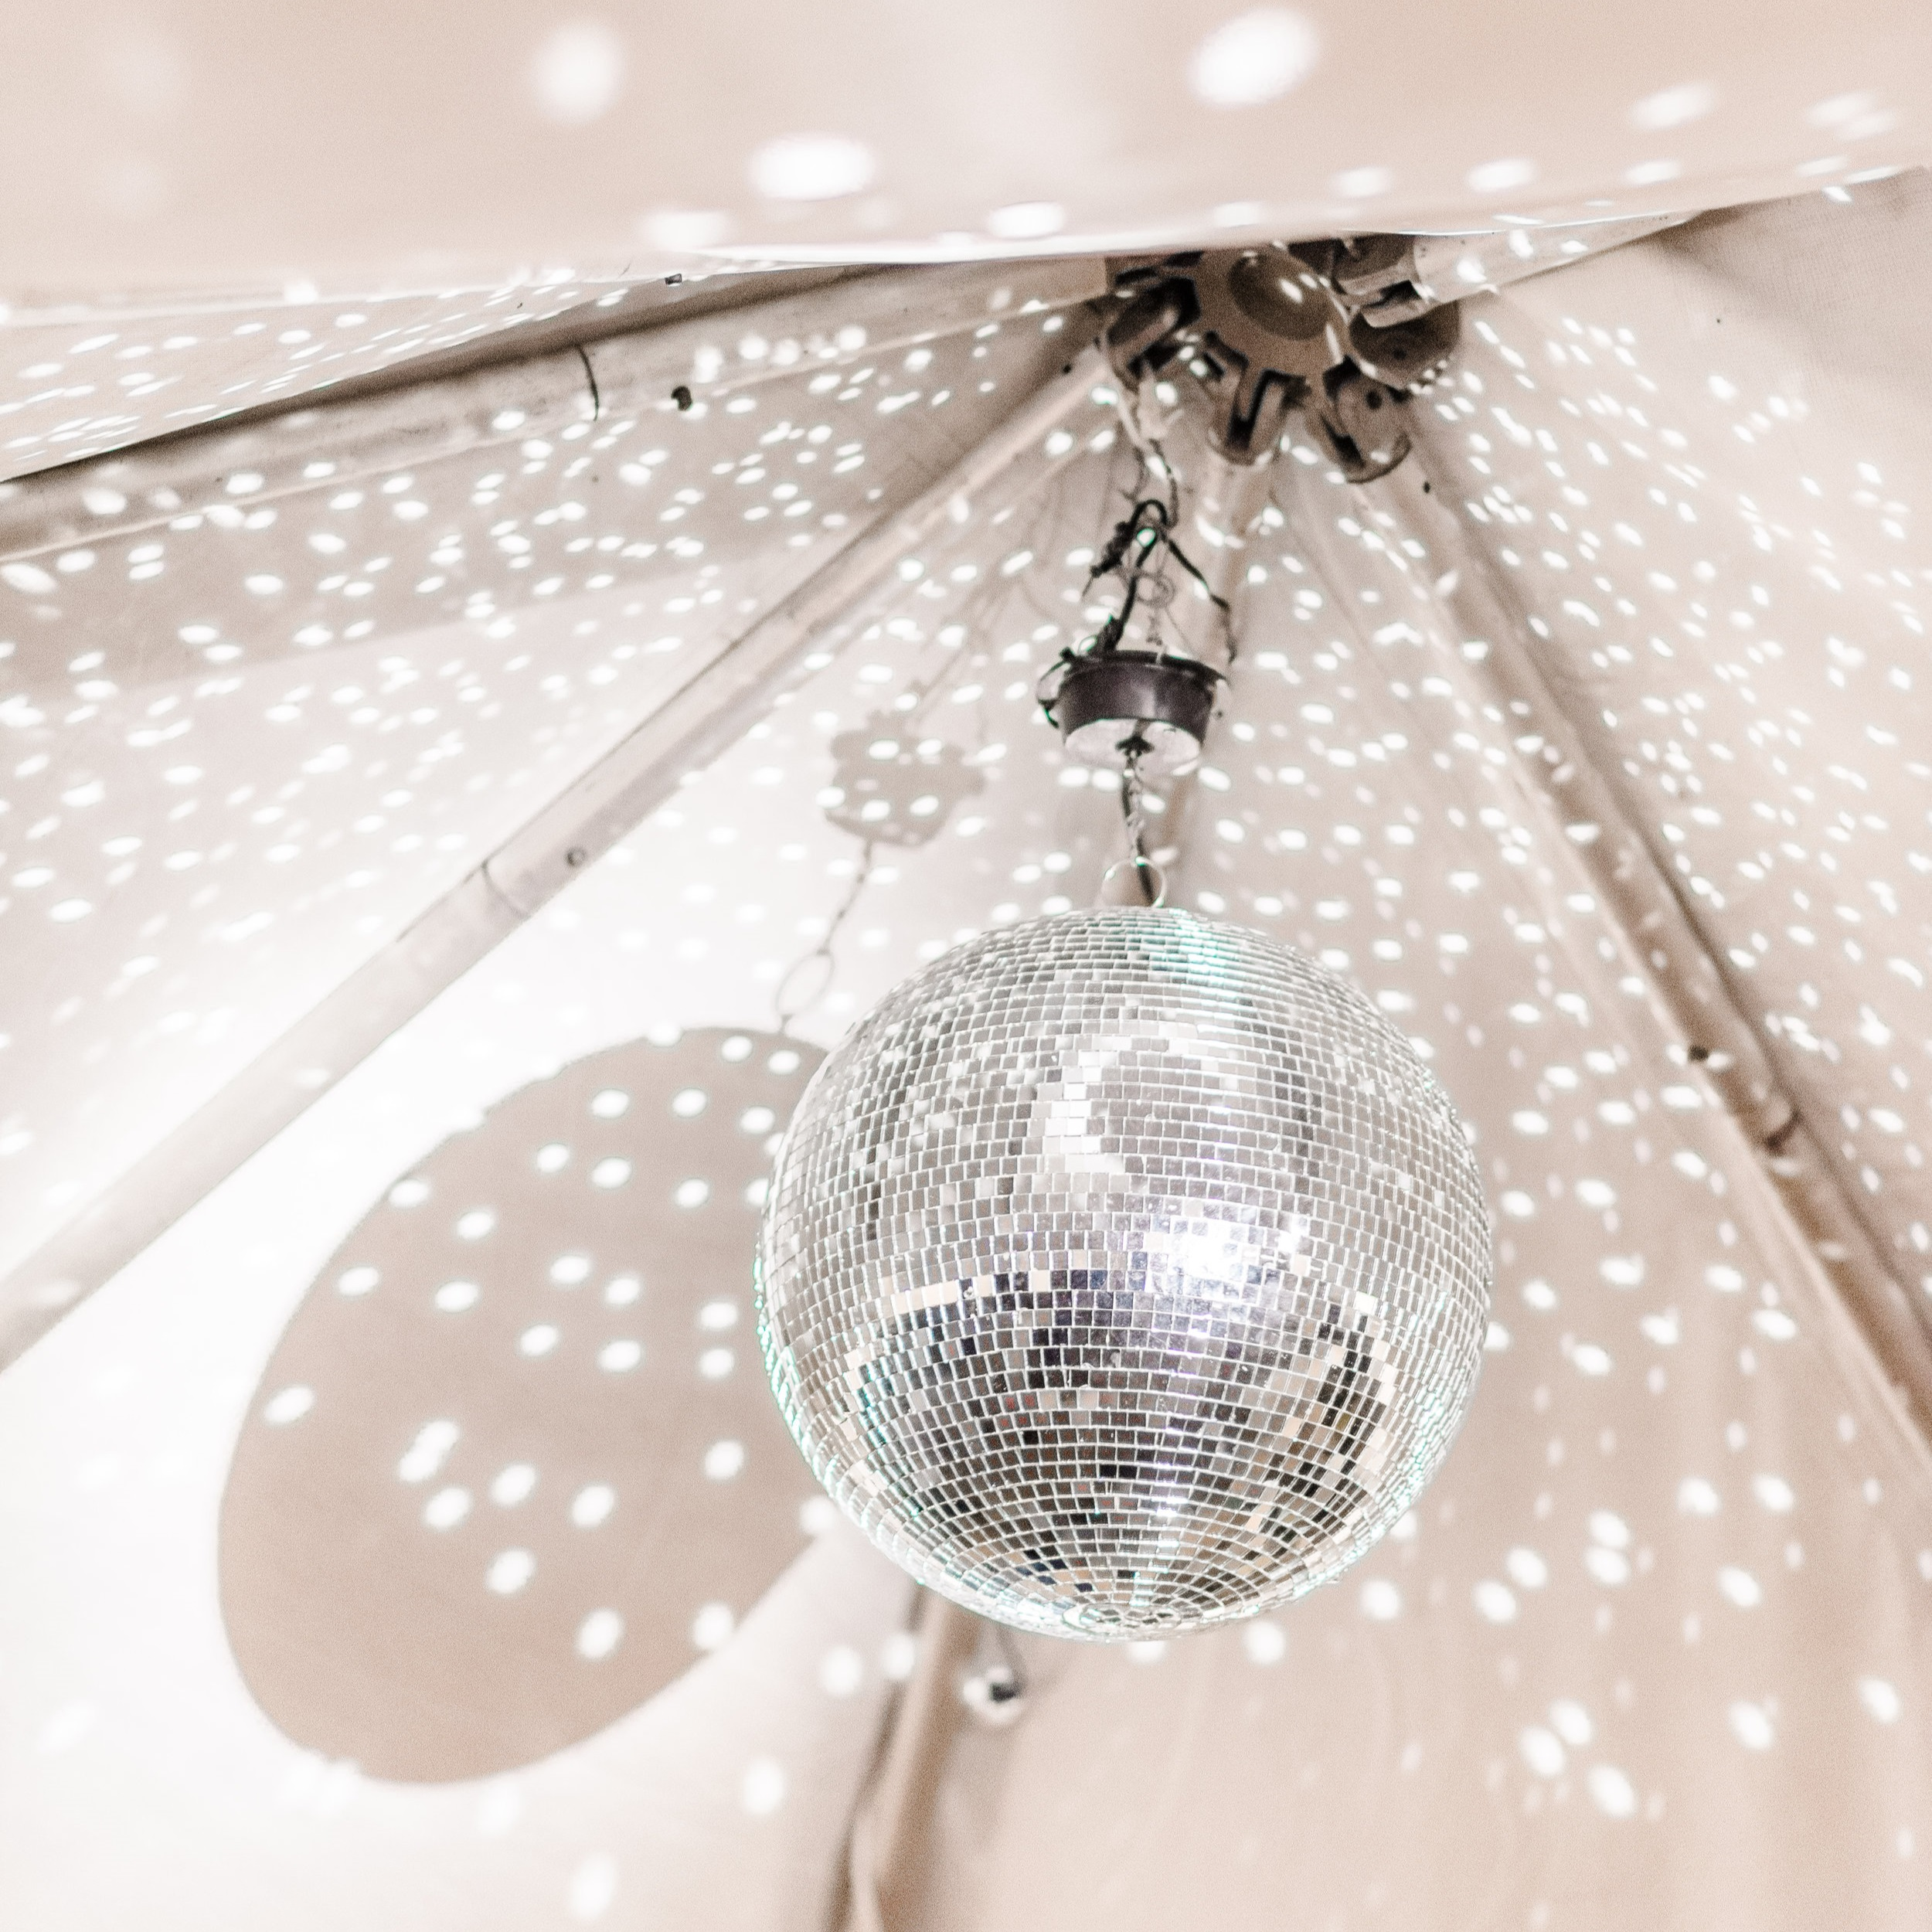 %2815%29+Disco+Ball+-+Bowden+Wedding+Reception+-+Kent+Valentine+House+-+The+Kent%27s+Photography+-+September+2018.jpg